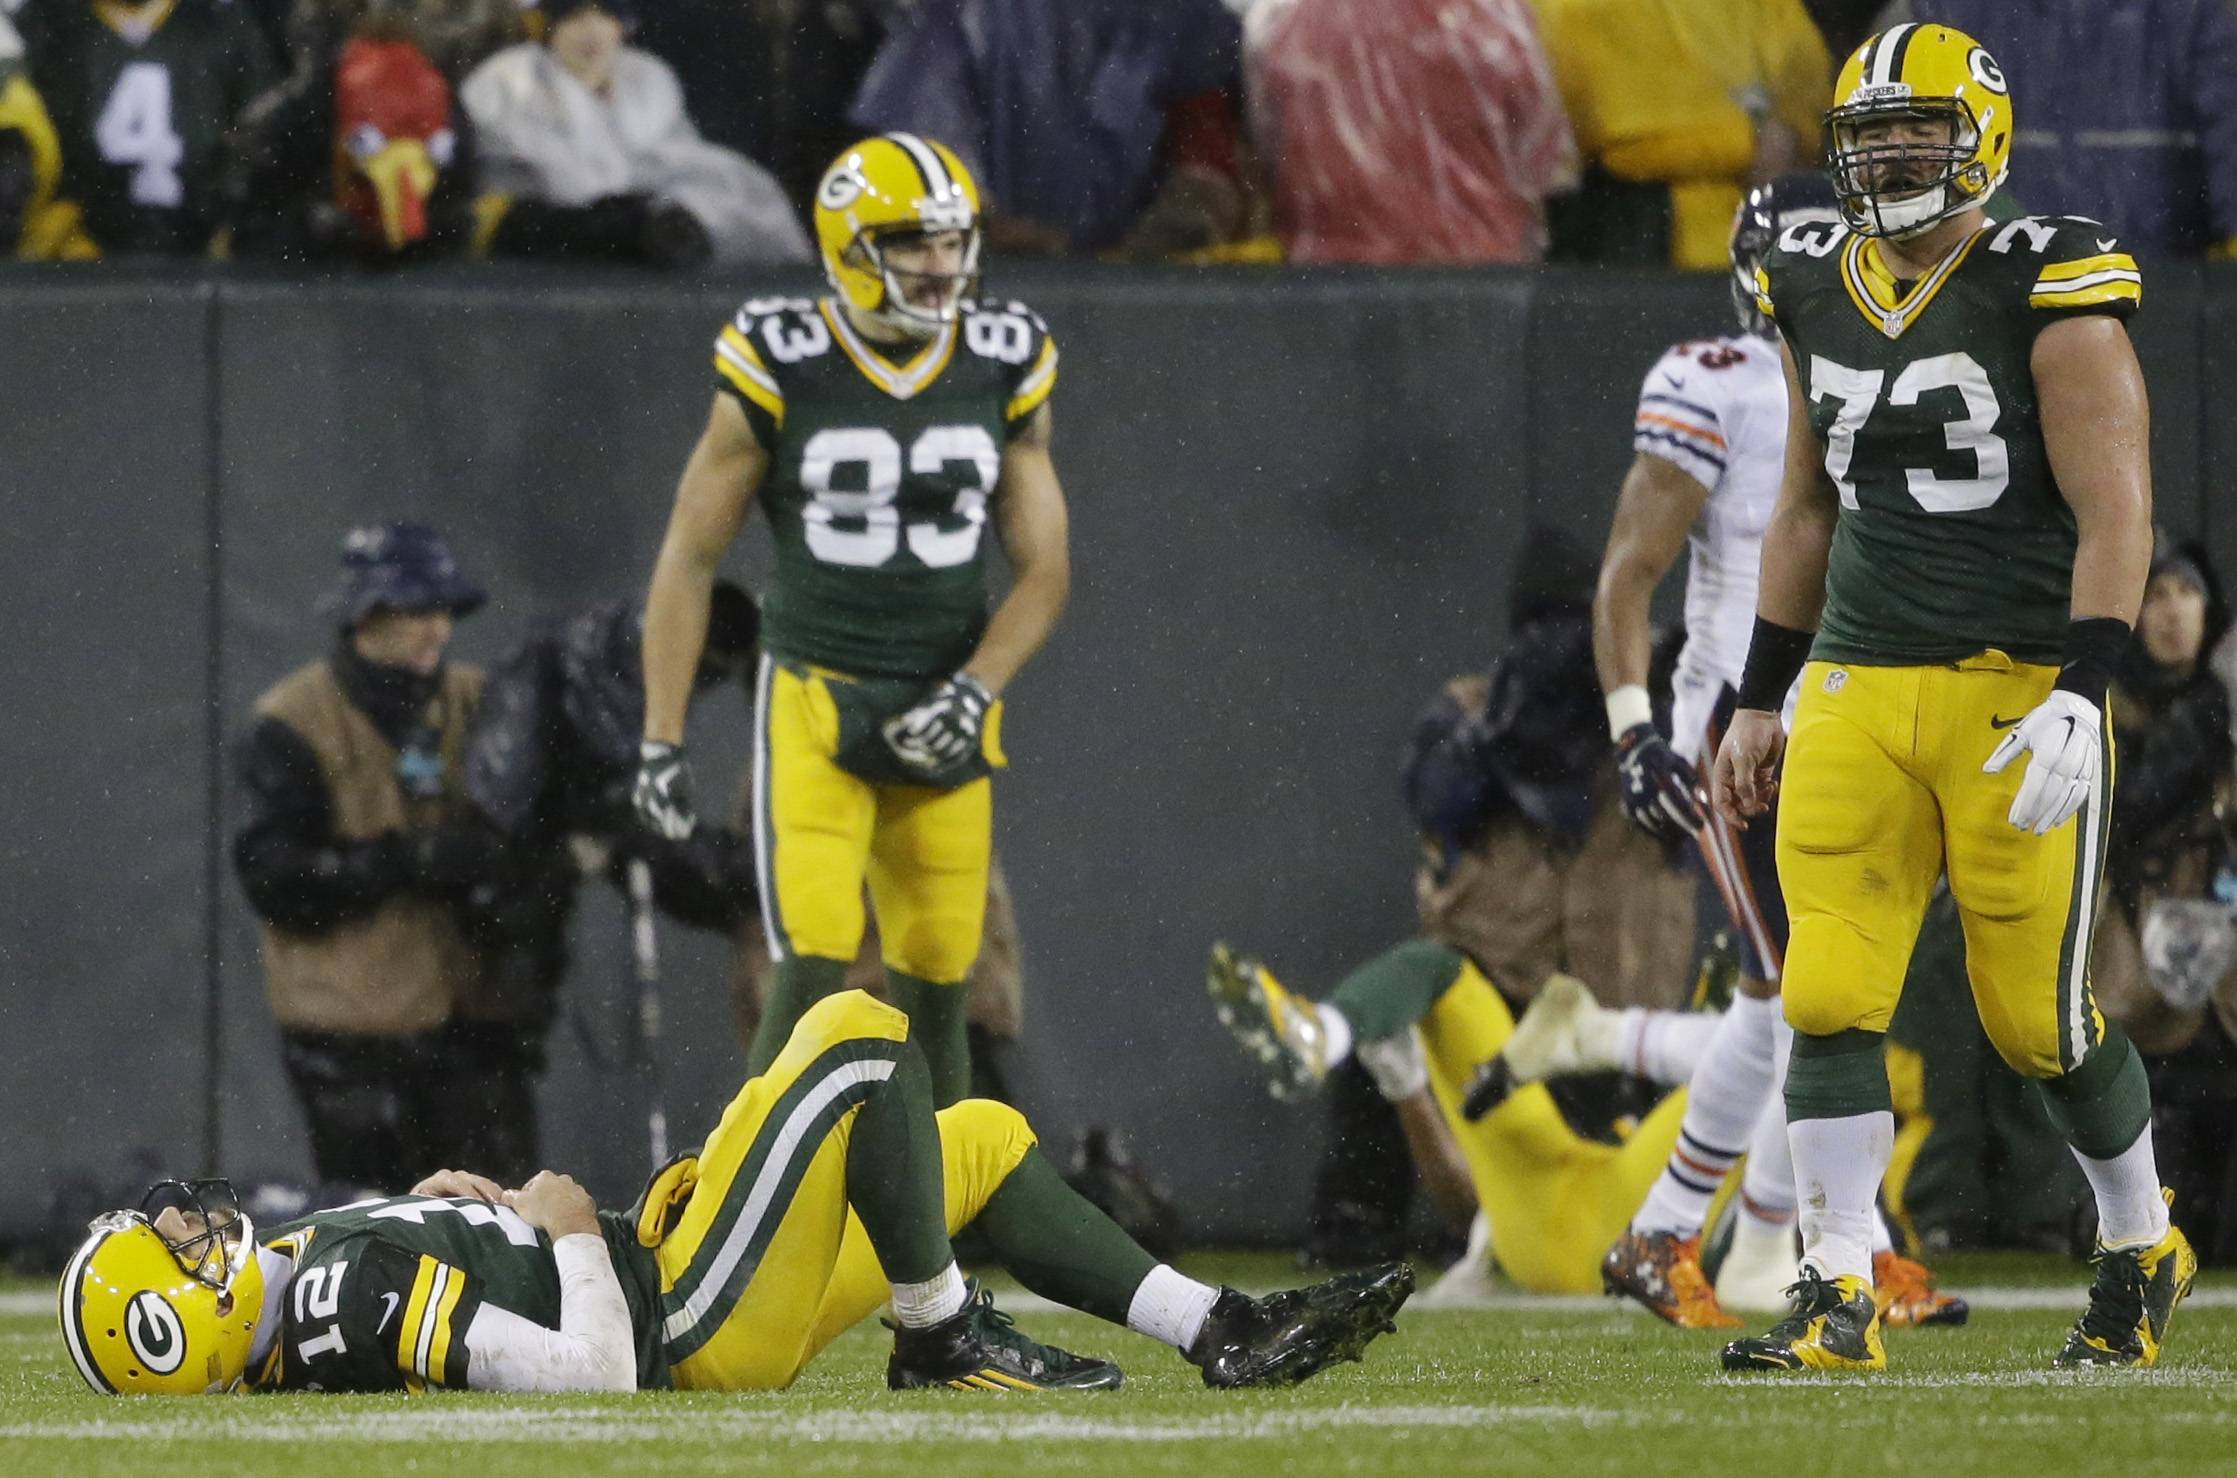 Green Bay Packers quarterback Aaron Rodgers lays on the field after failing to complete on fourth down in the final seconds against the Bears on Thursday night.